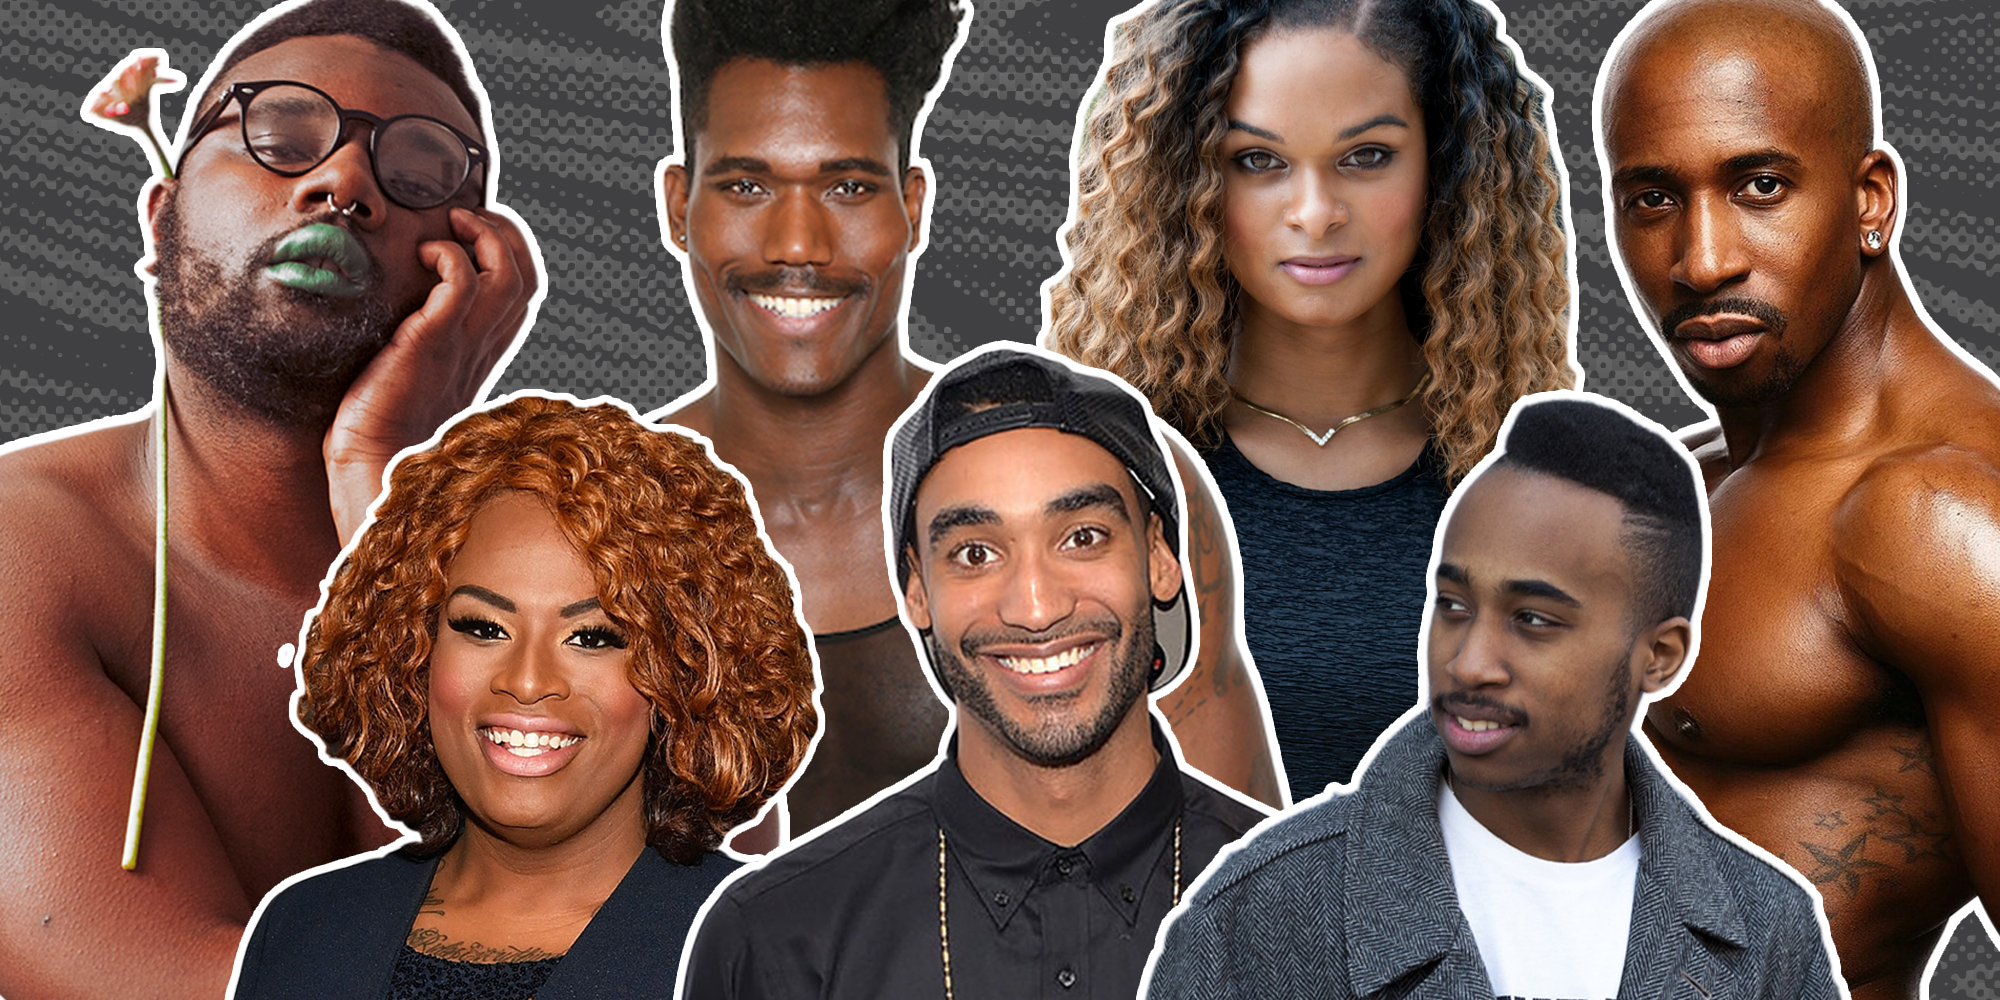 As Black History Month Comes to a Close, Be Sure to Follow These 11 Change-Makers, Trailblazers & Activists